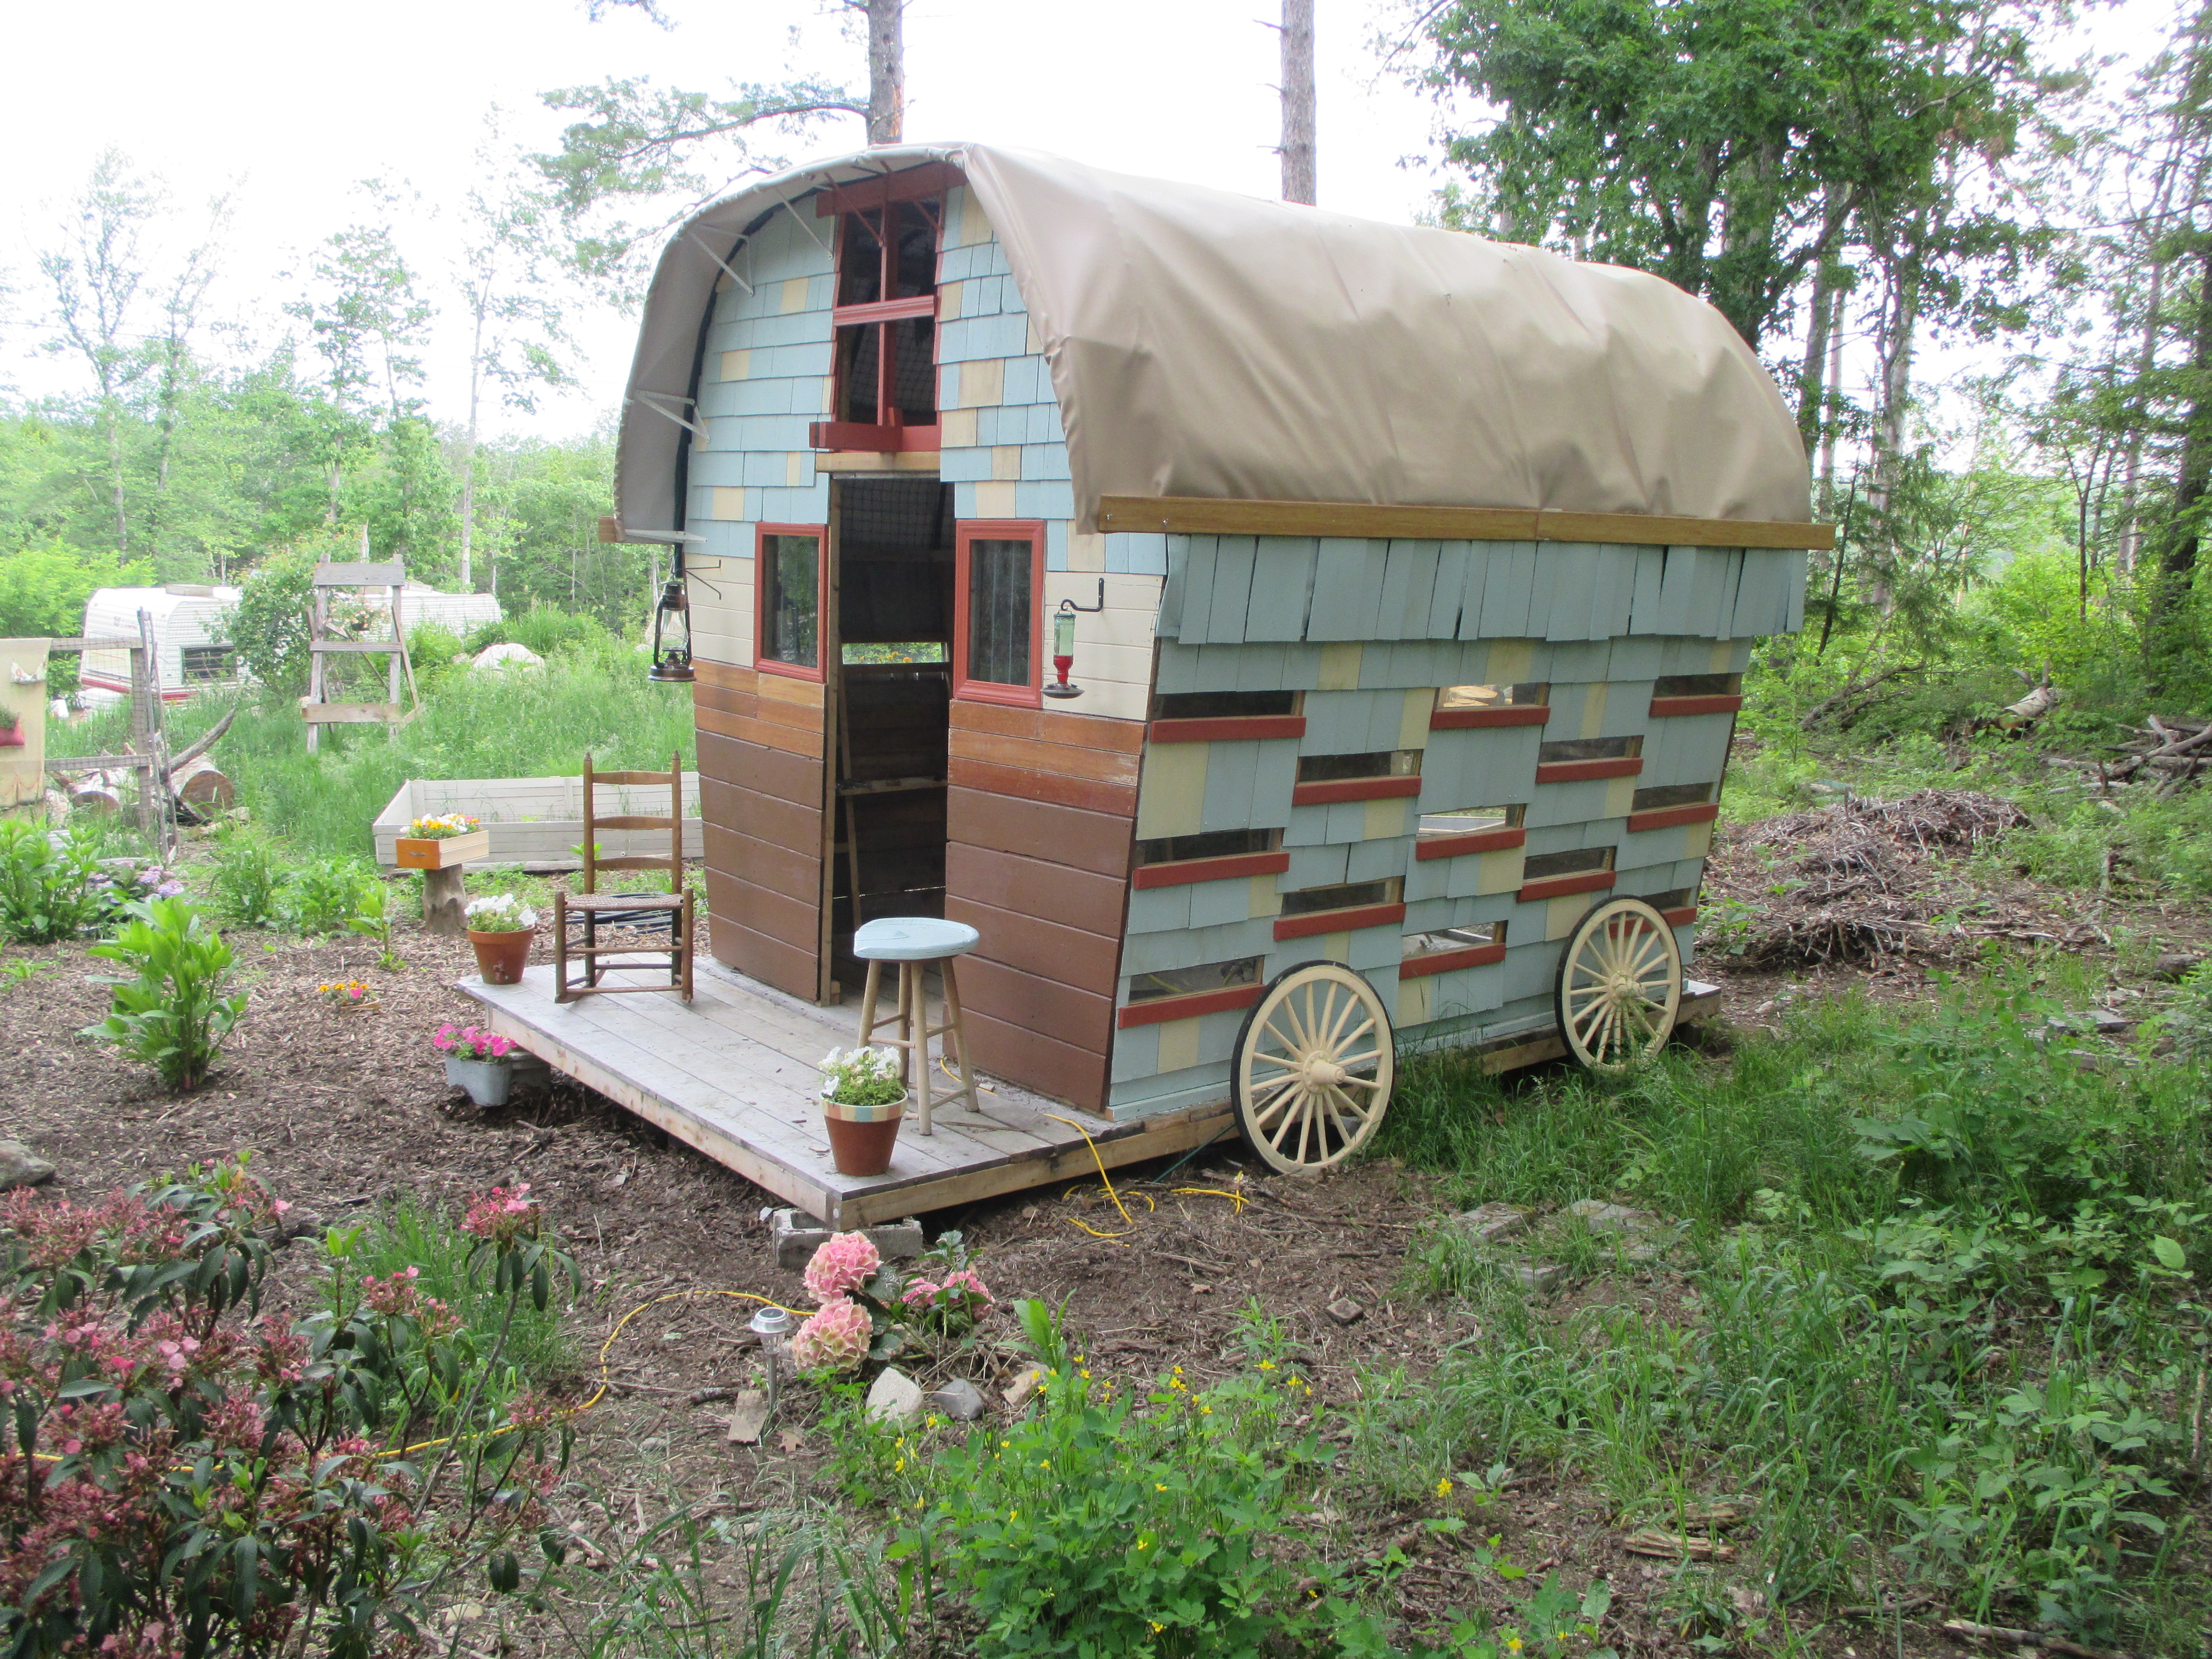 Picture of Gypsy Wagon Built From Salvaged Materials